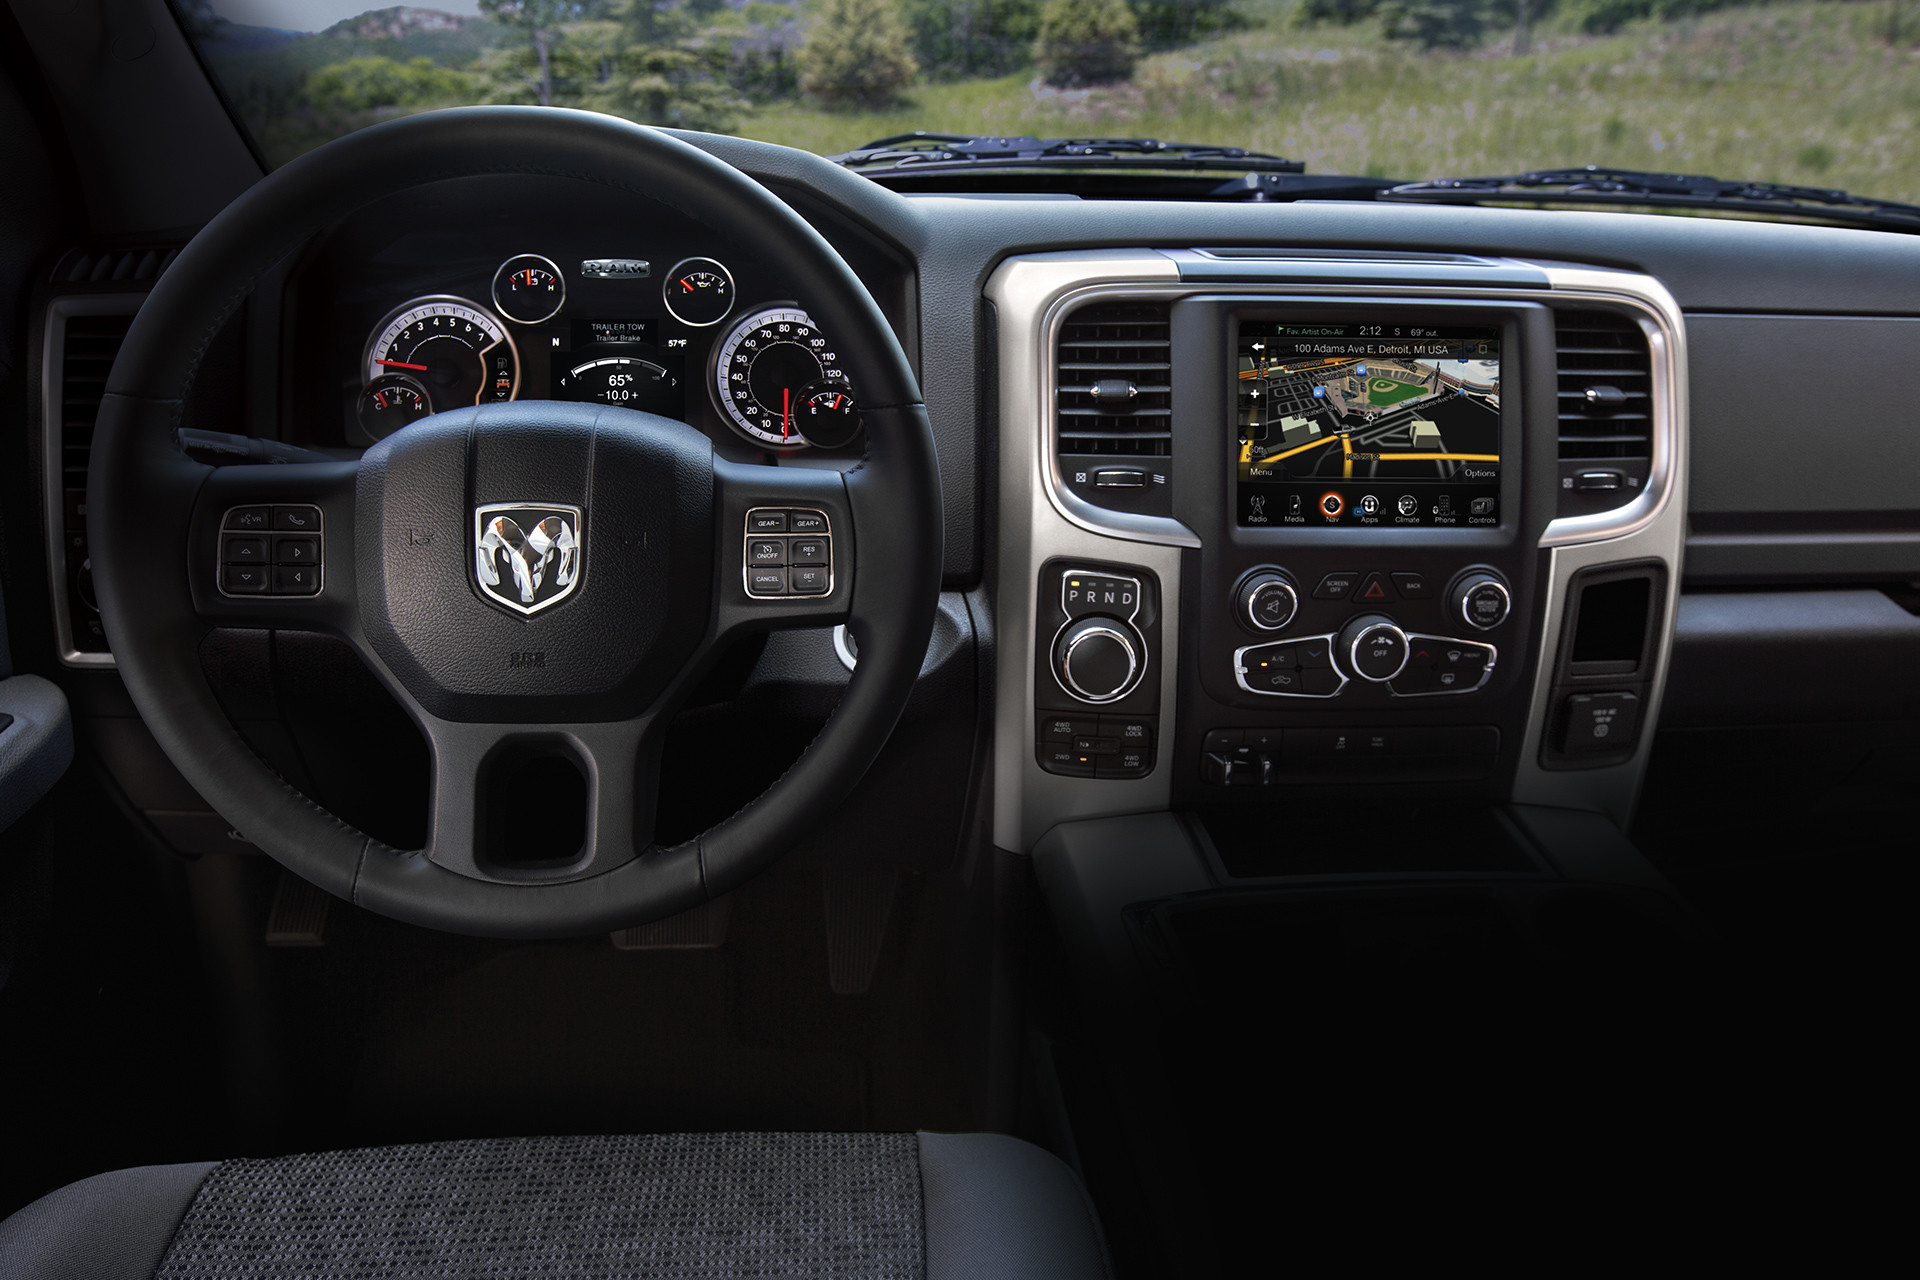 2019 Ram 1500 Classic interior, showing in-cluster display and Uconnect multimedia centre